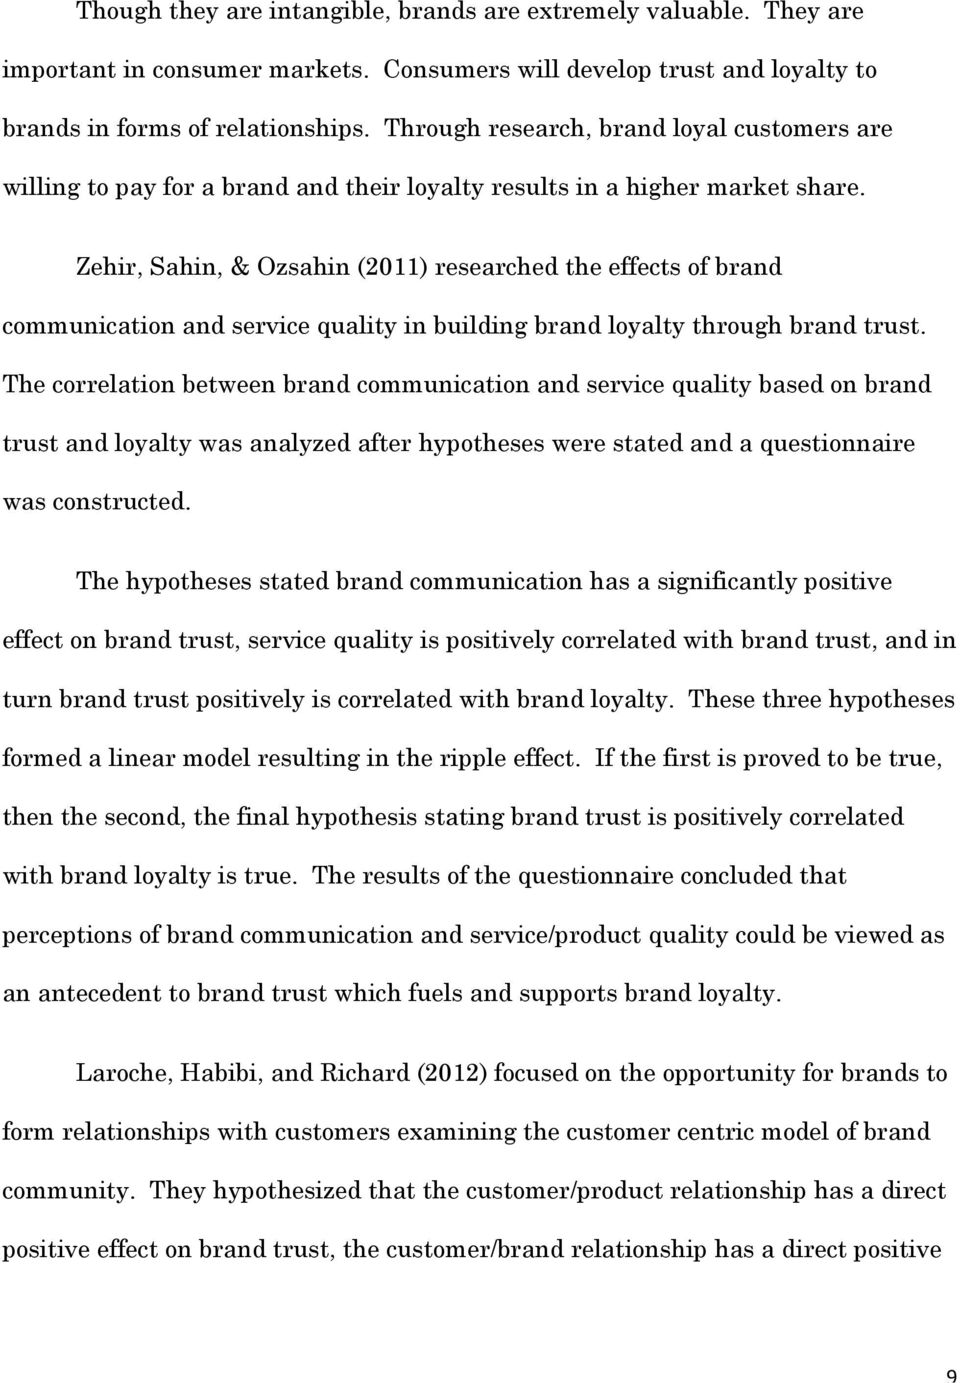 Zehir, Sahin, & Ozsahin (2011) researched the effects of brand communication and service quality in building brand loyalty through brand trust.